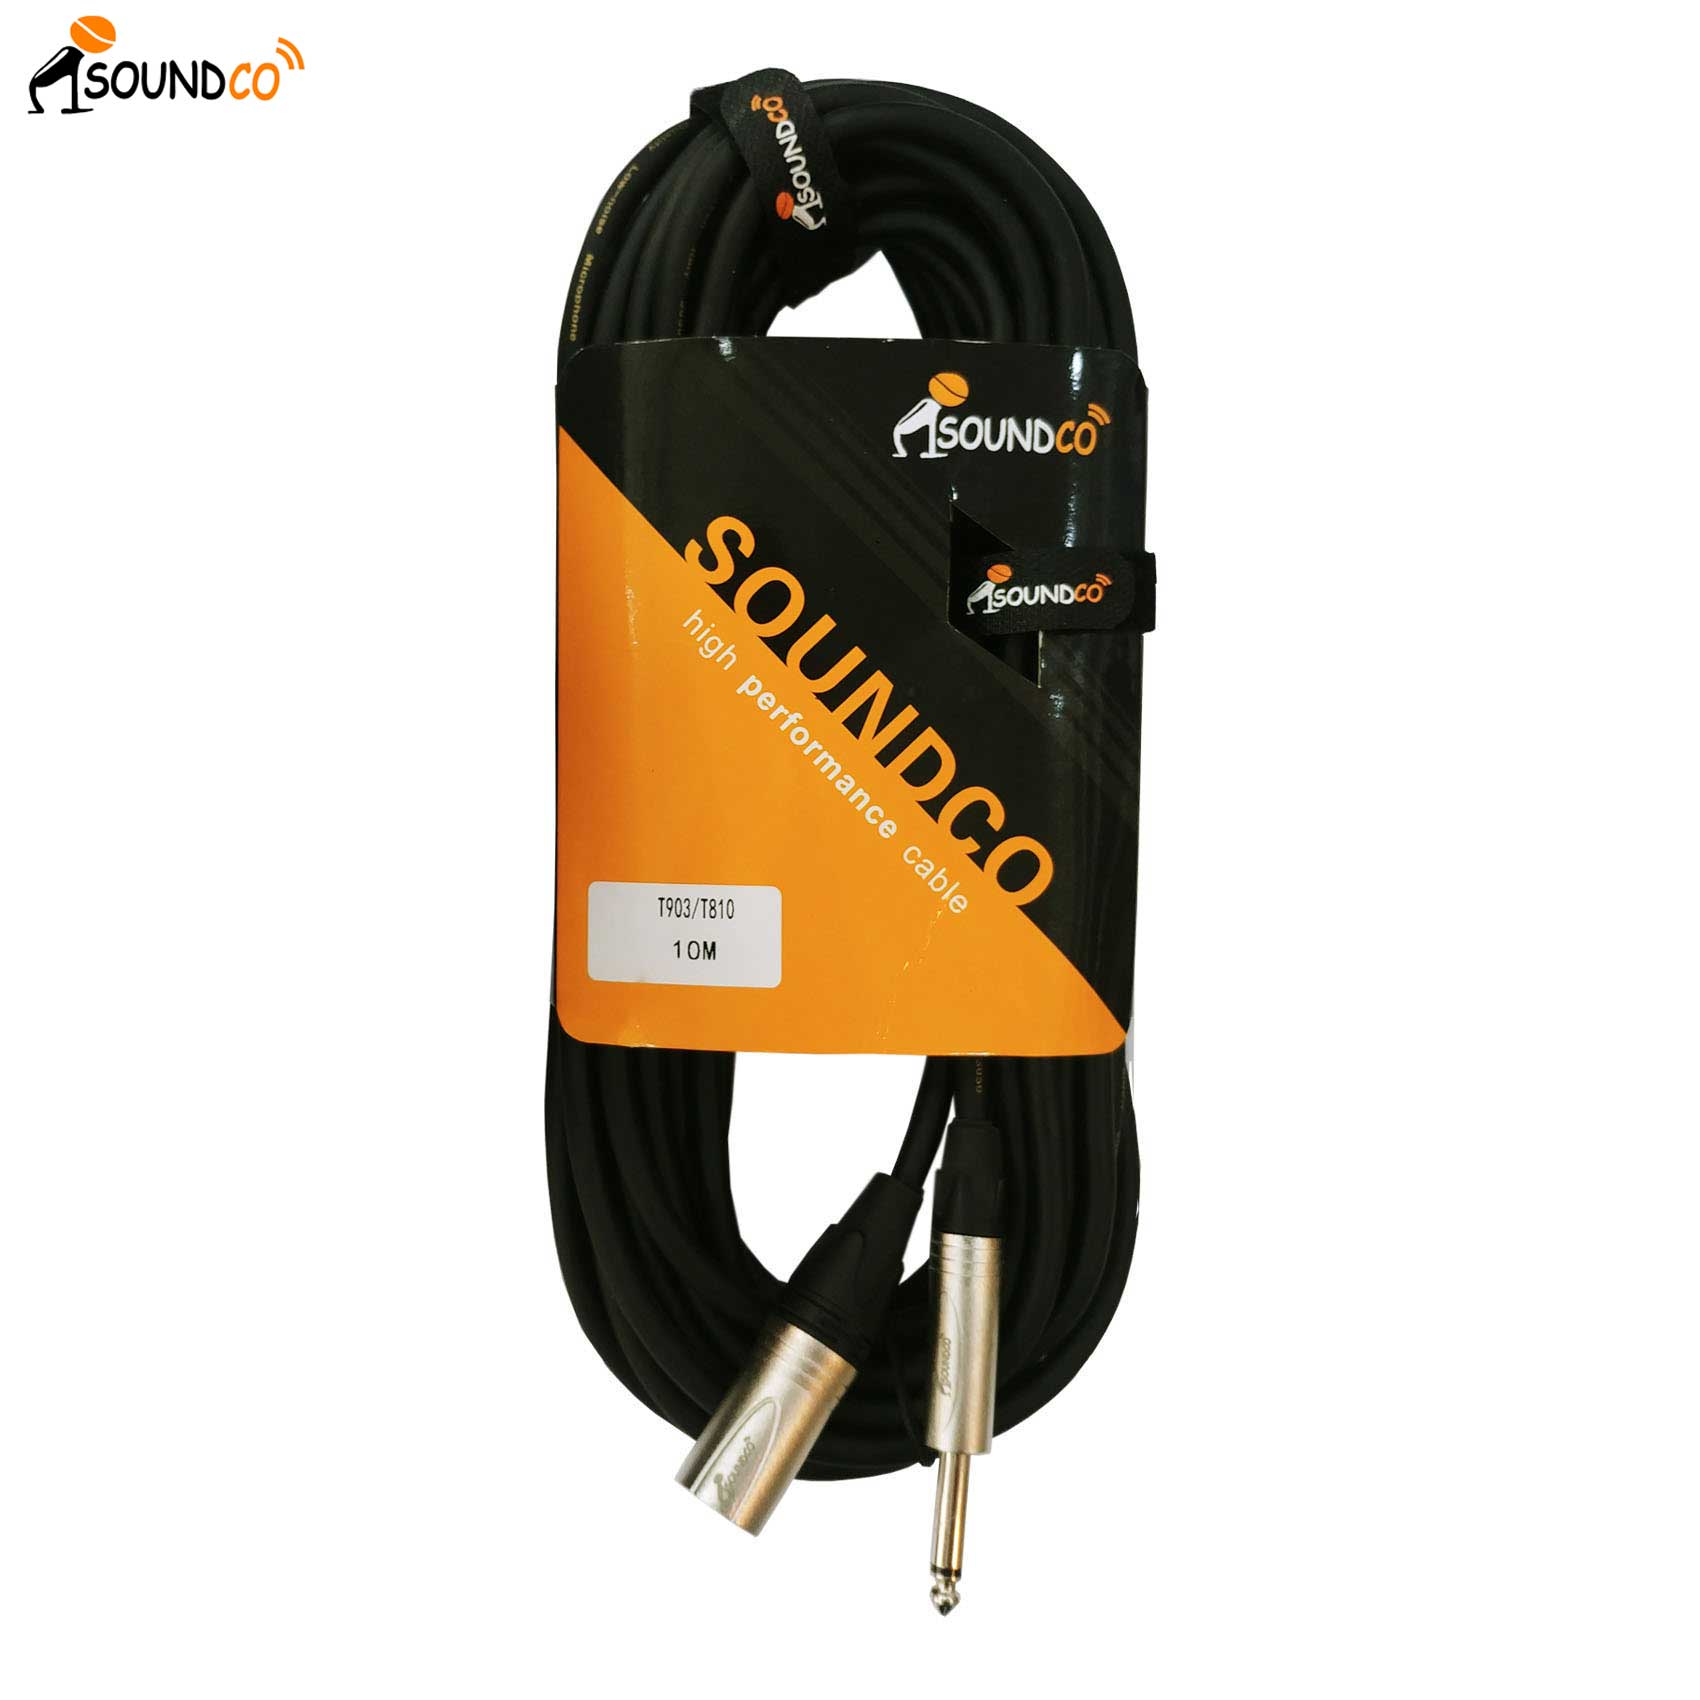 XLR to TRS 10m Cable